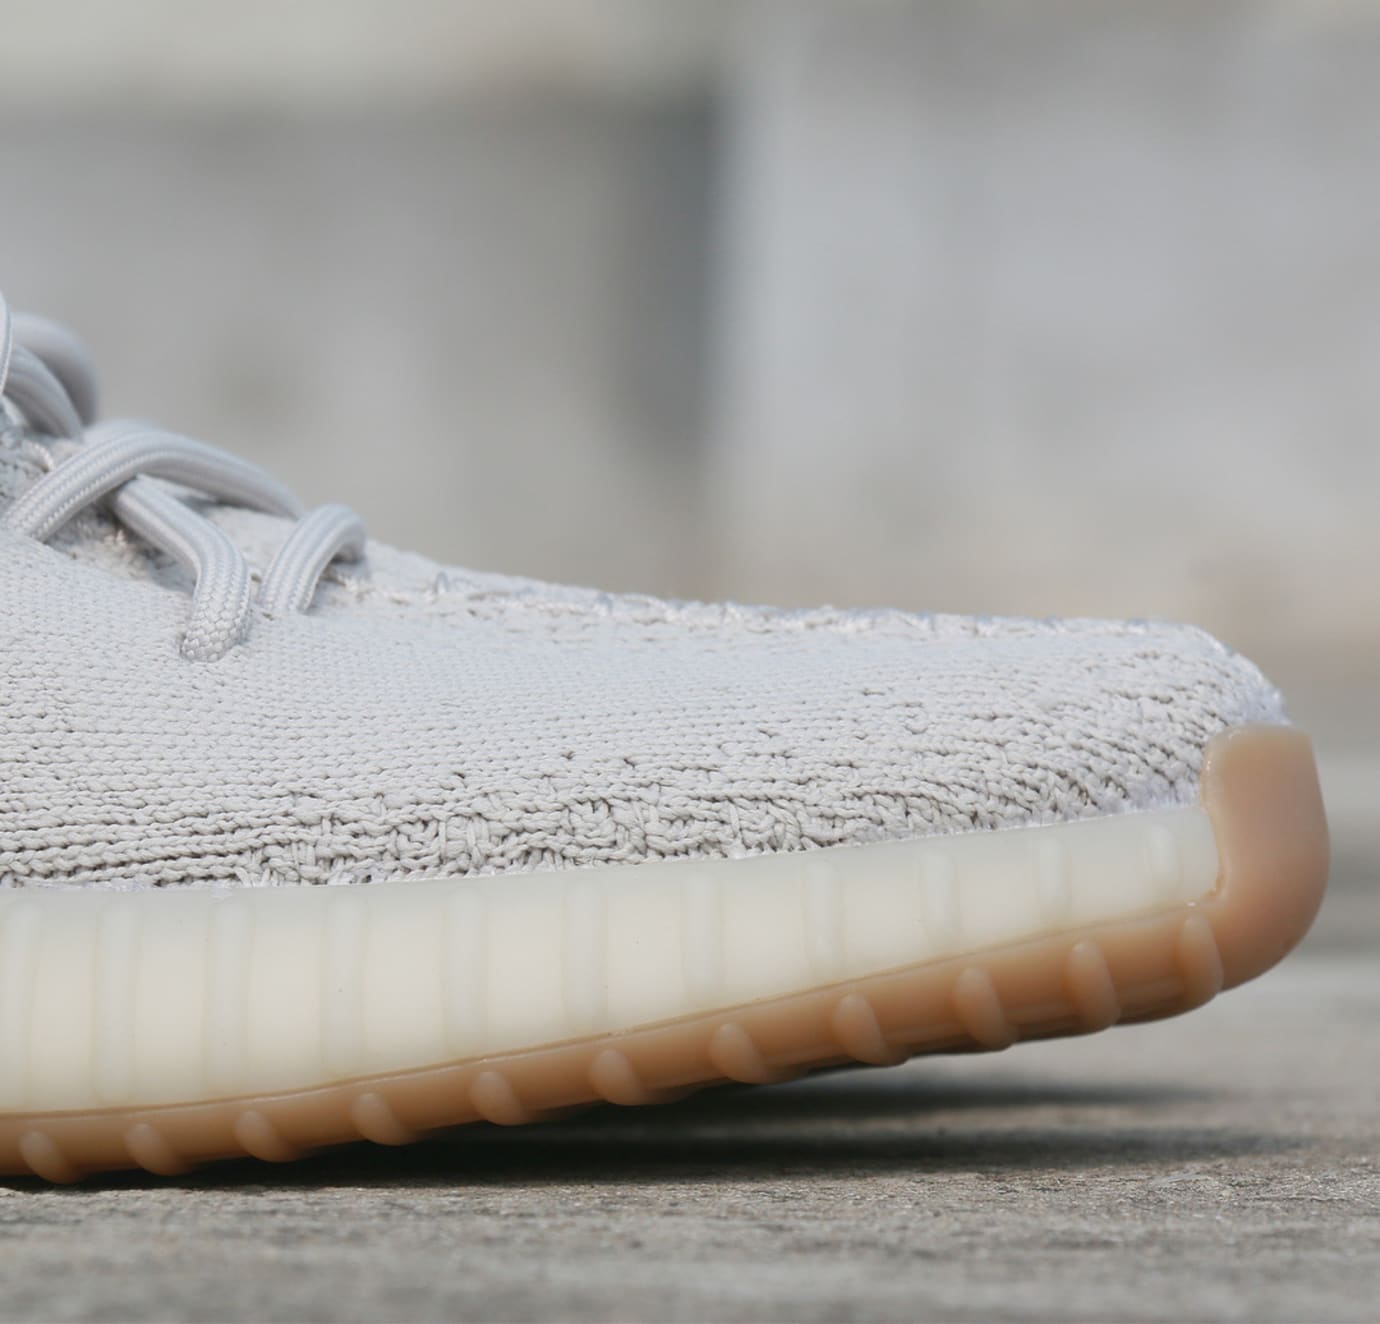 new styles a2fd1 1b4dc Adidas Yeezy Boost 350 V2 Sesame Release Date F99710 | Sole ...